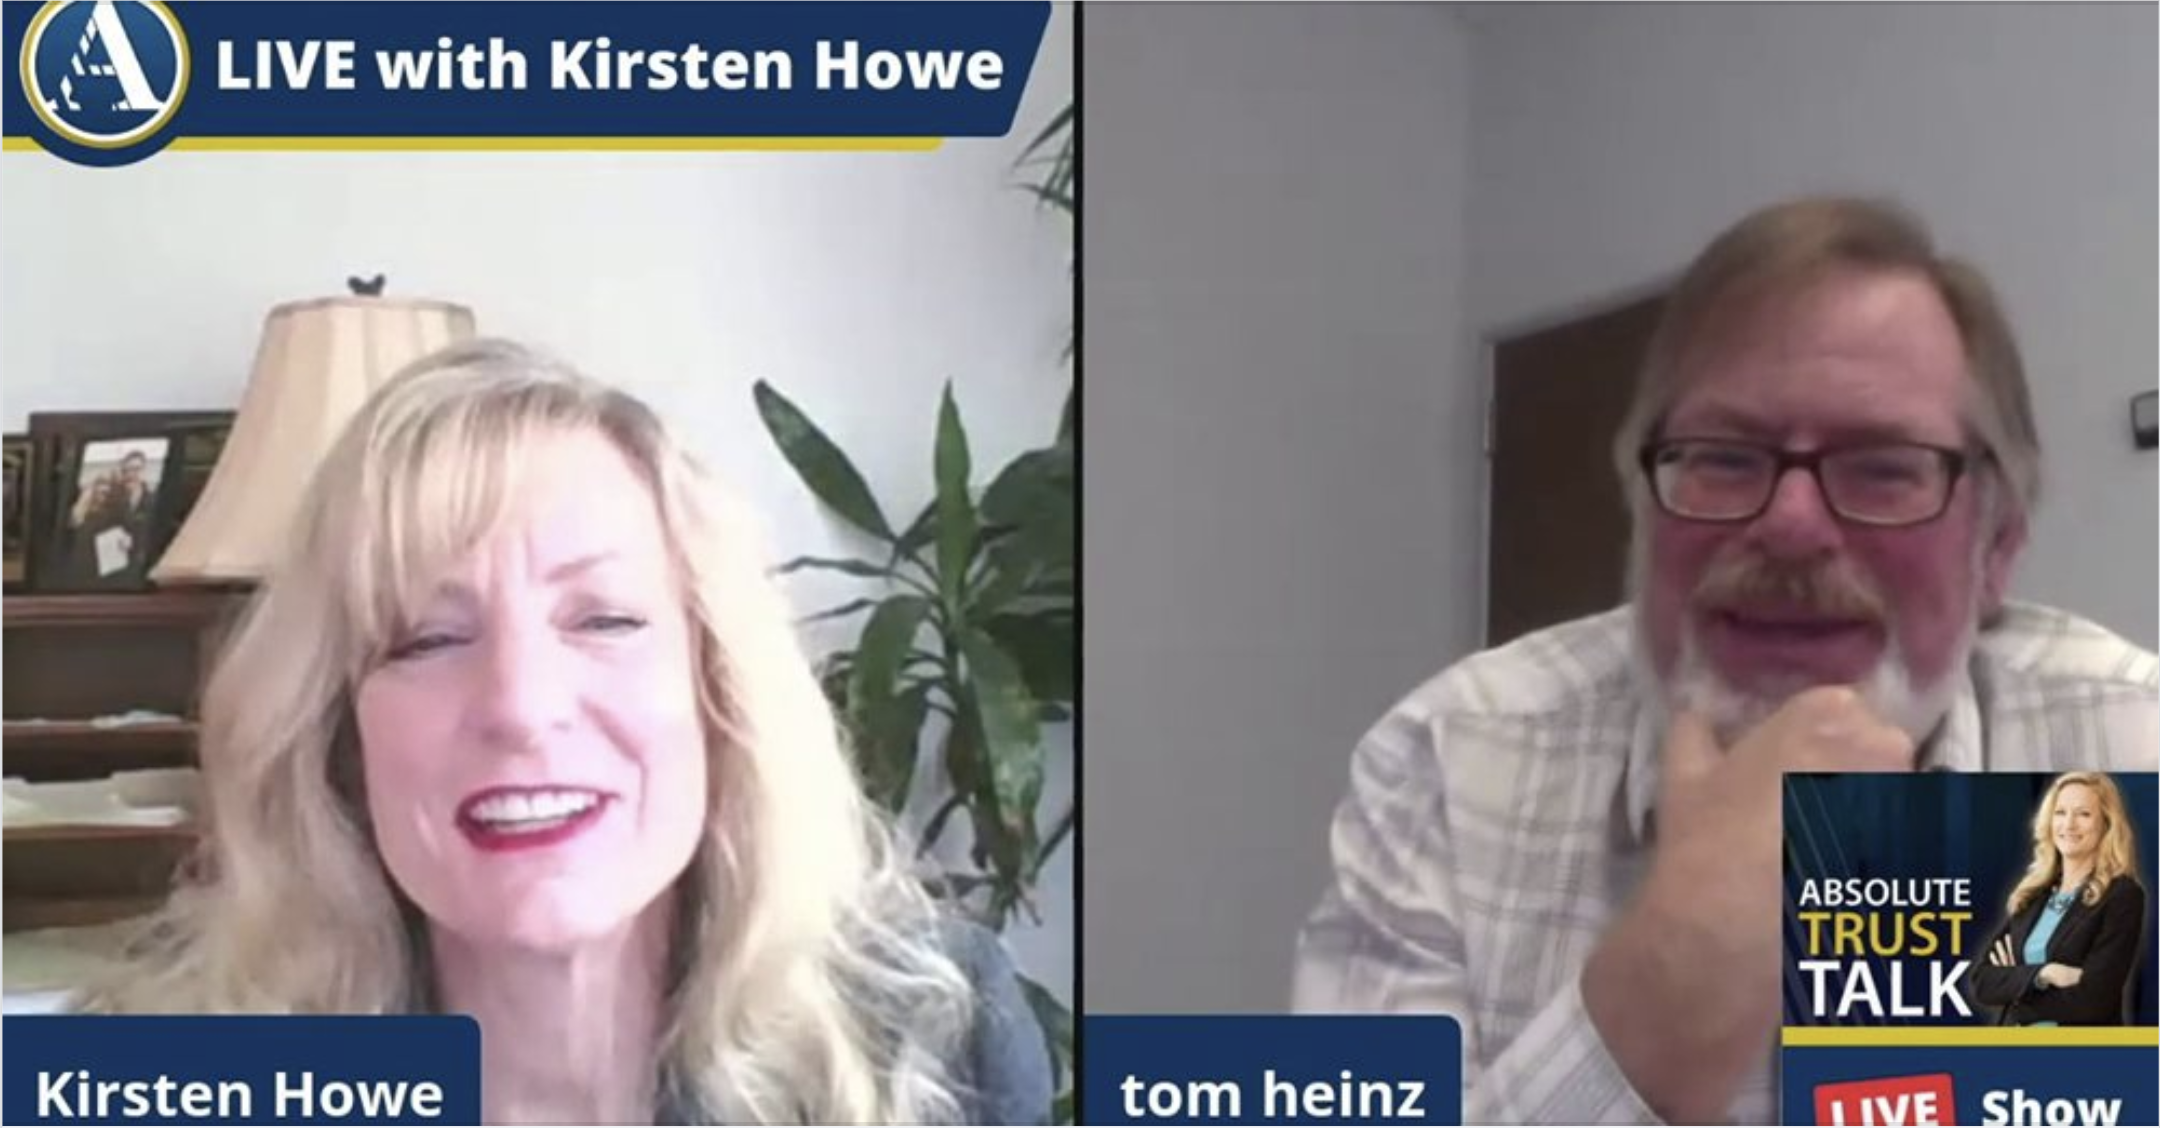 EBI's Executive Director Tom Heinz in Absolute Trust Talk's Podcast with Kristen Howe